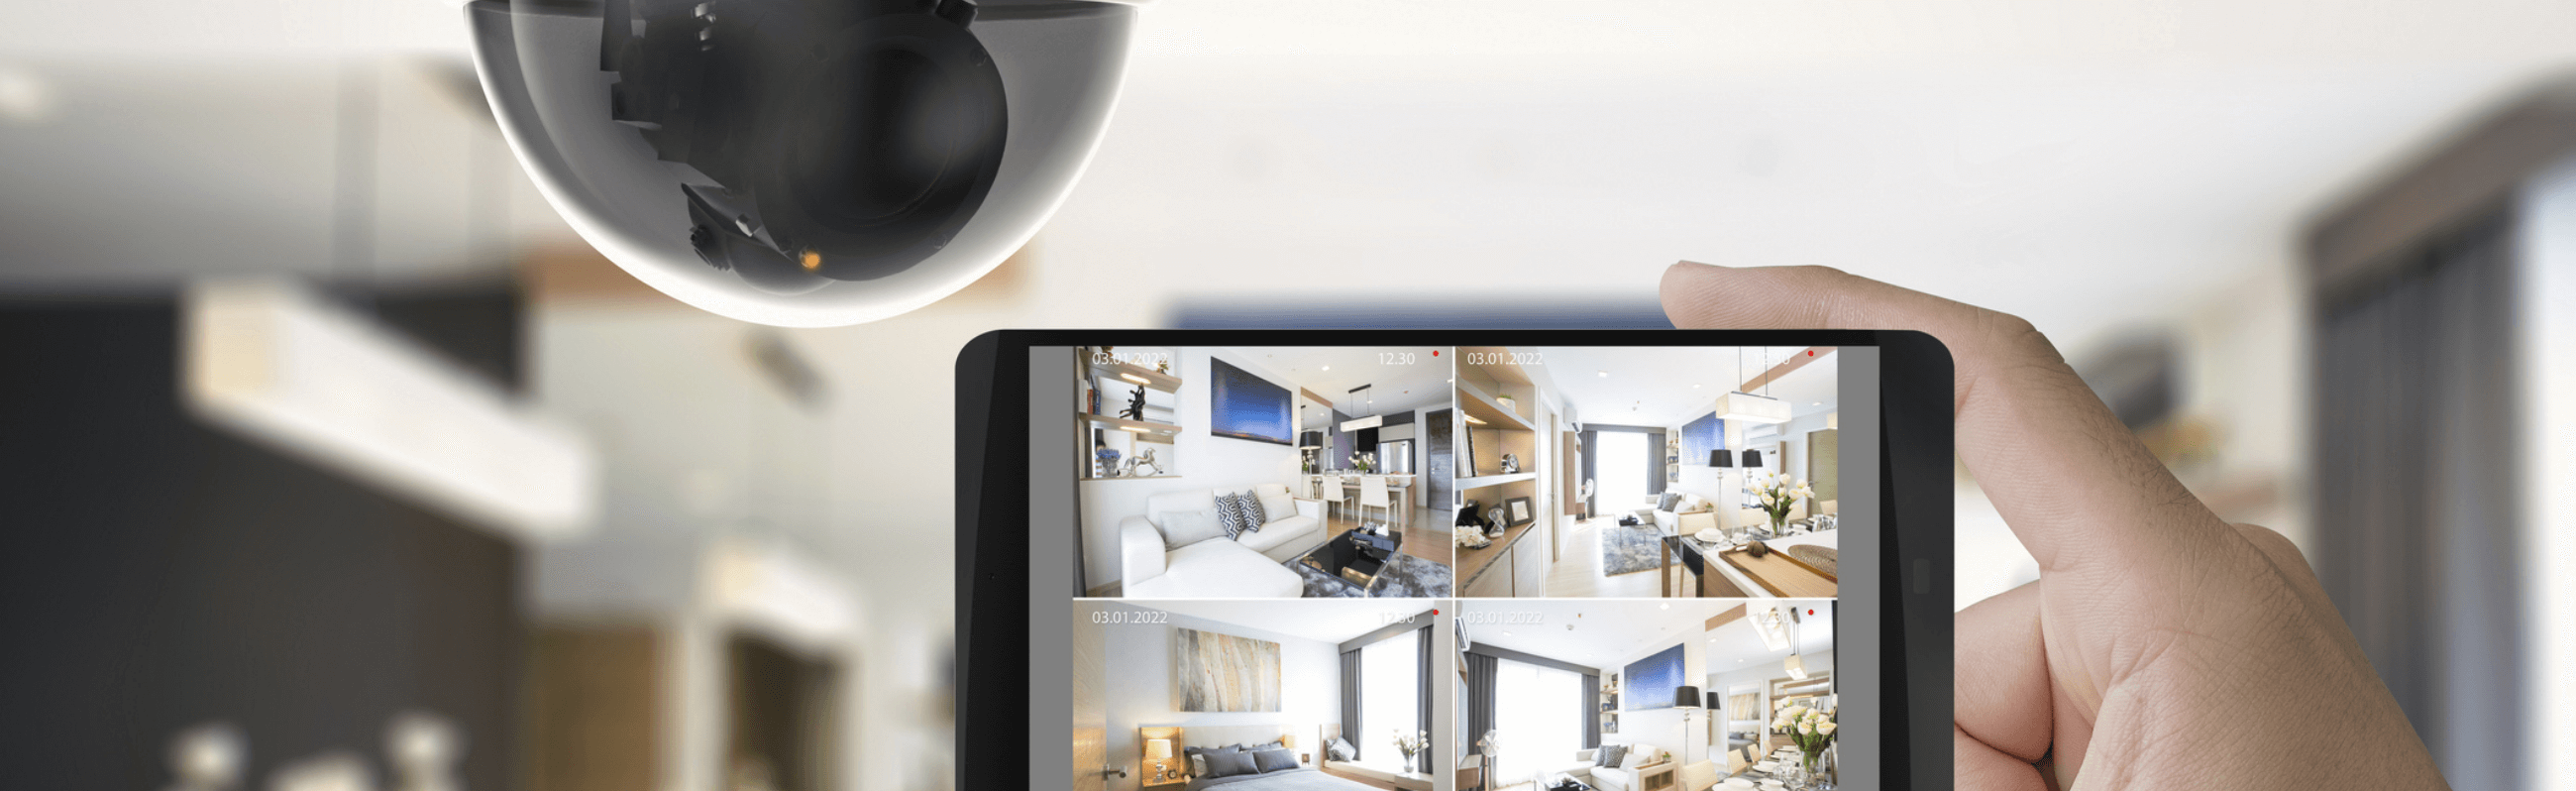 Smart security camera and smartphone